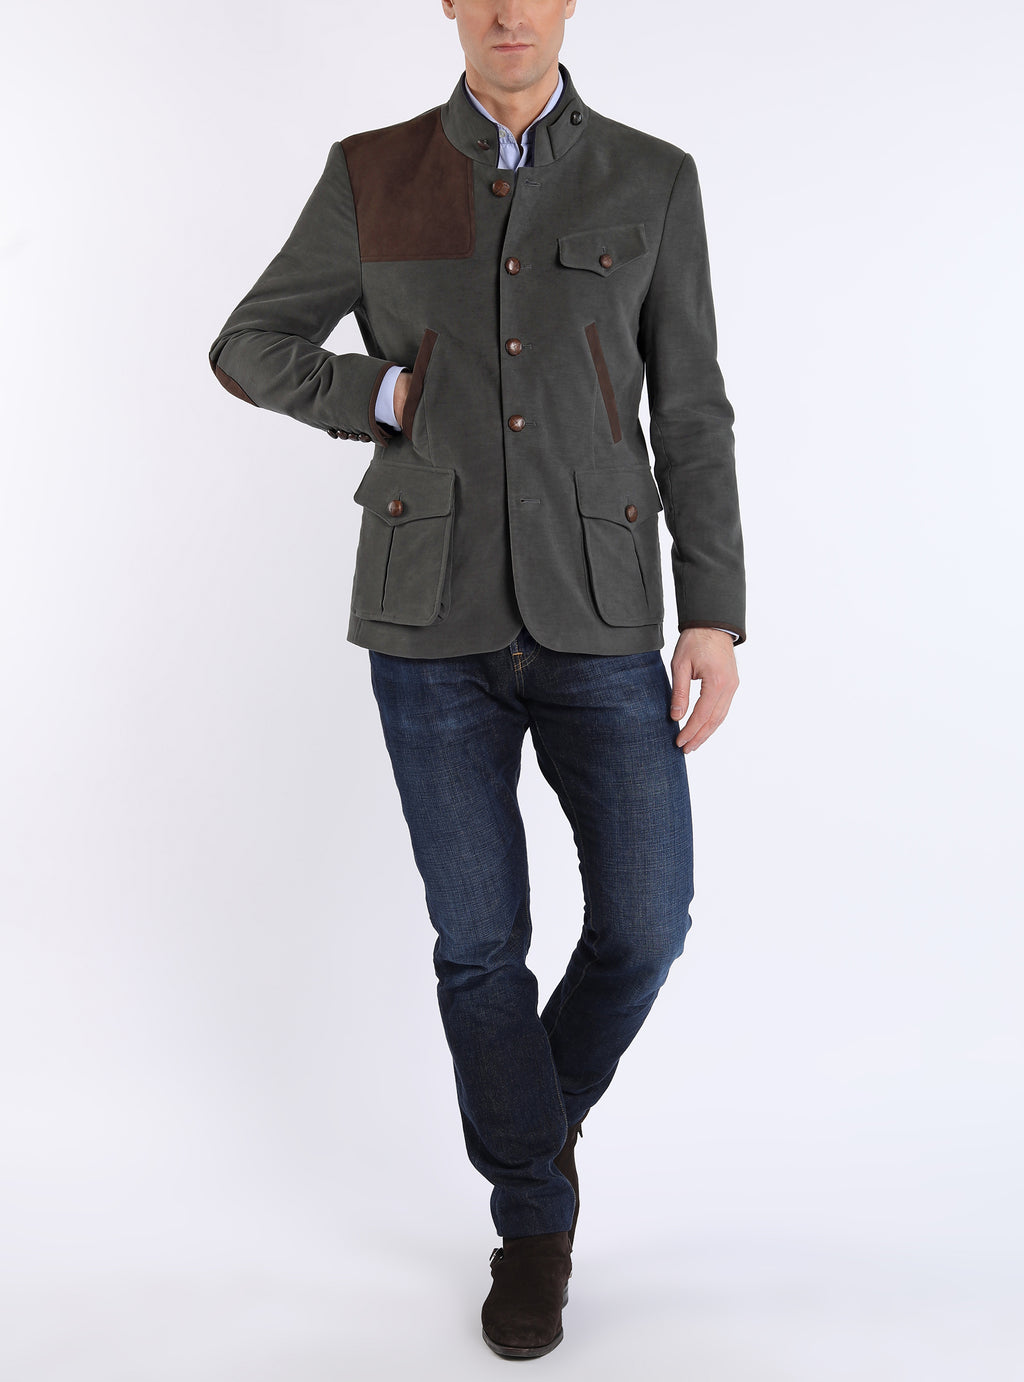 Shooting Jacket from Italian Moleskin in olive